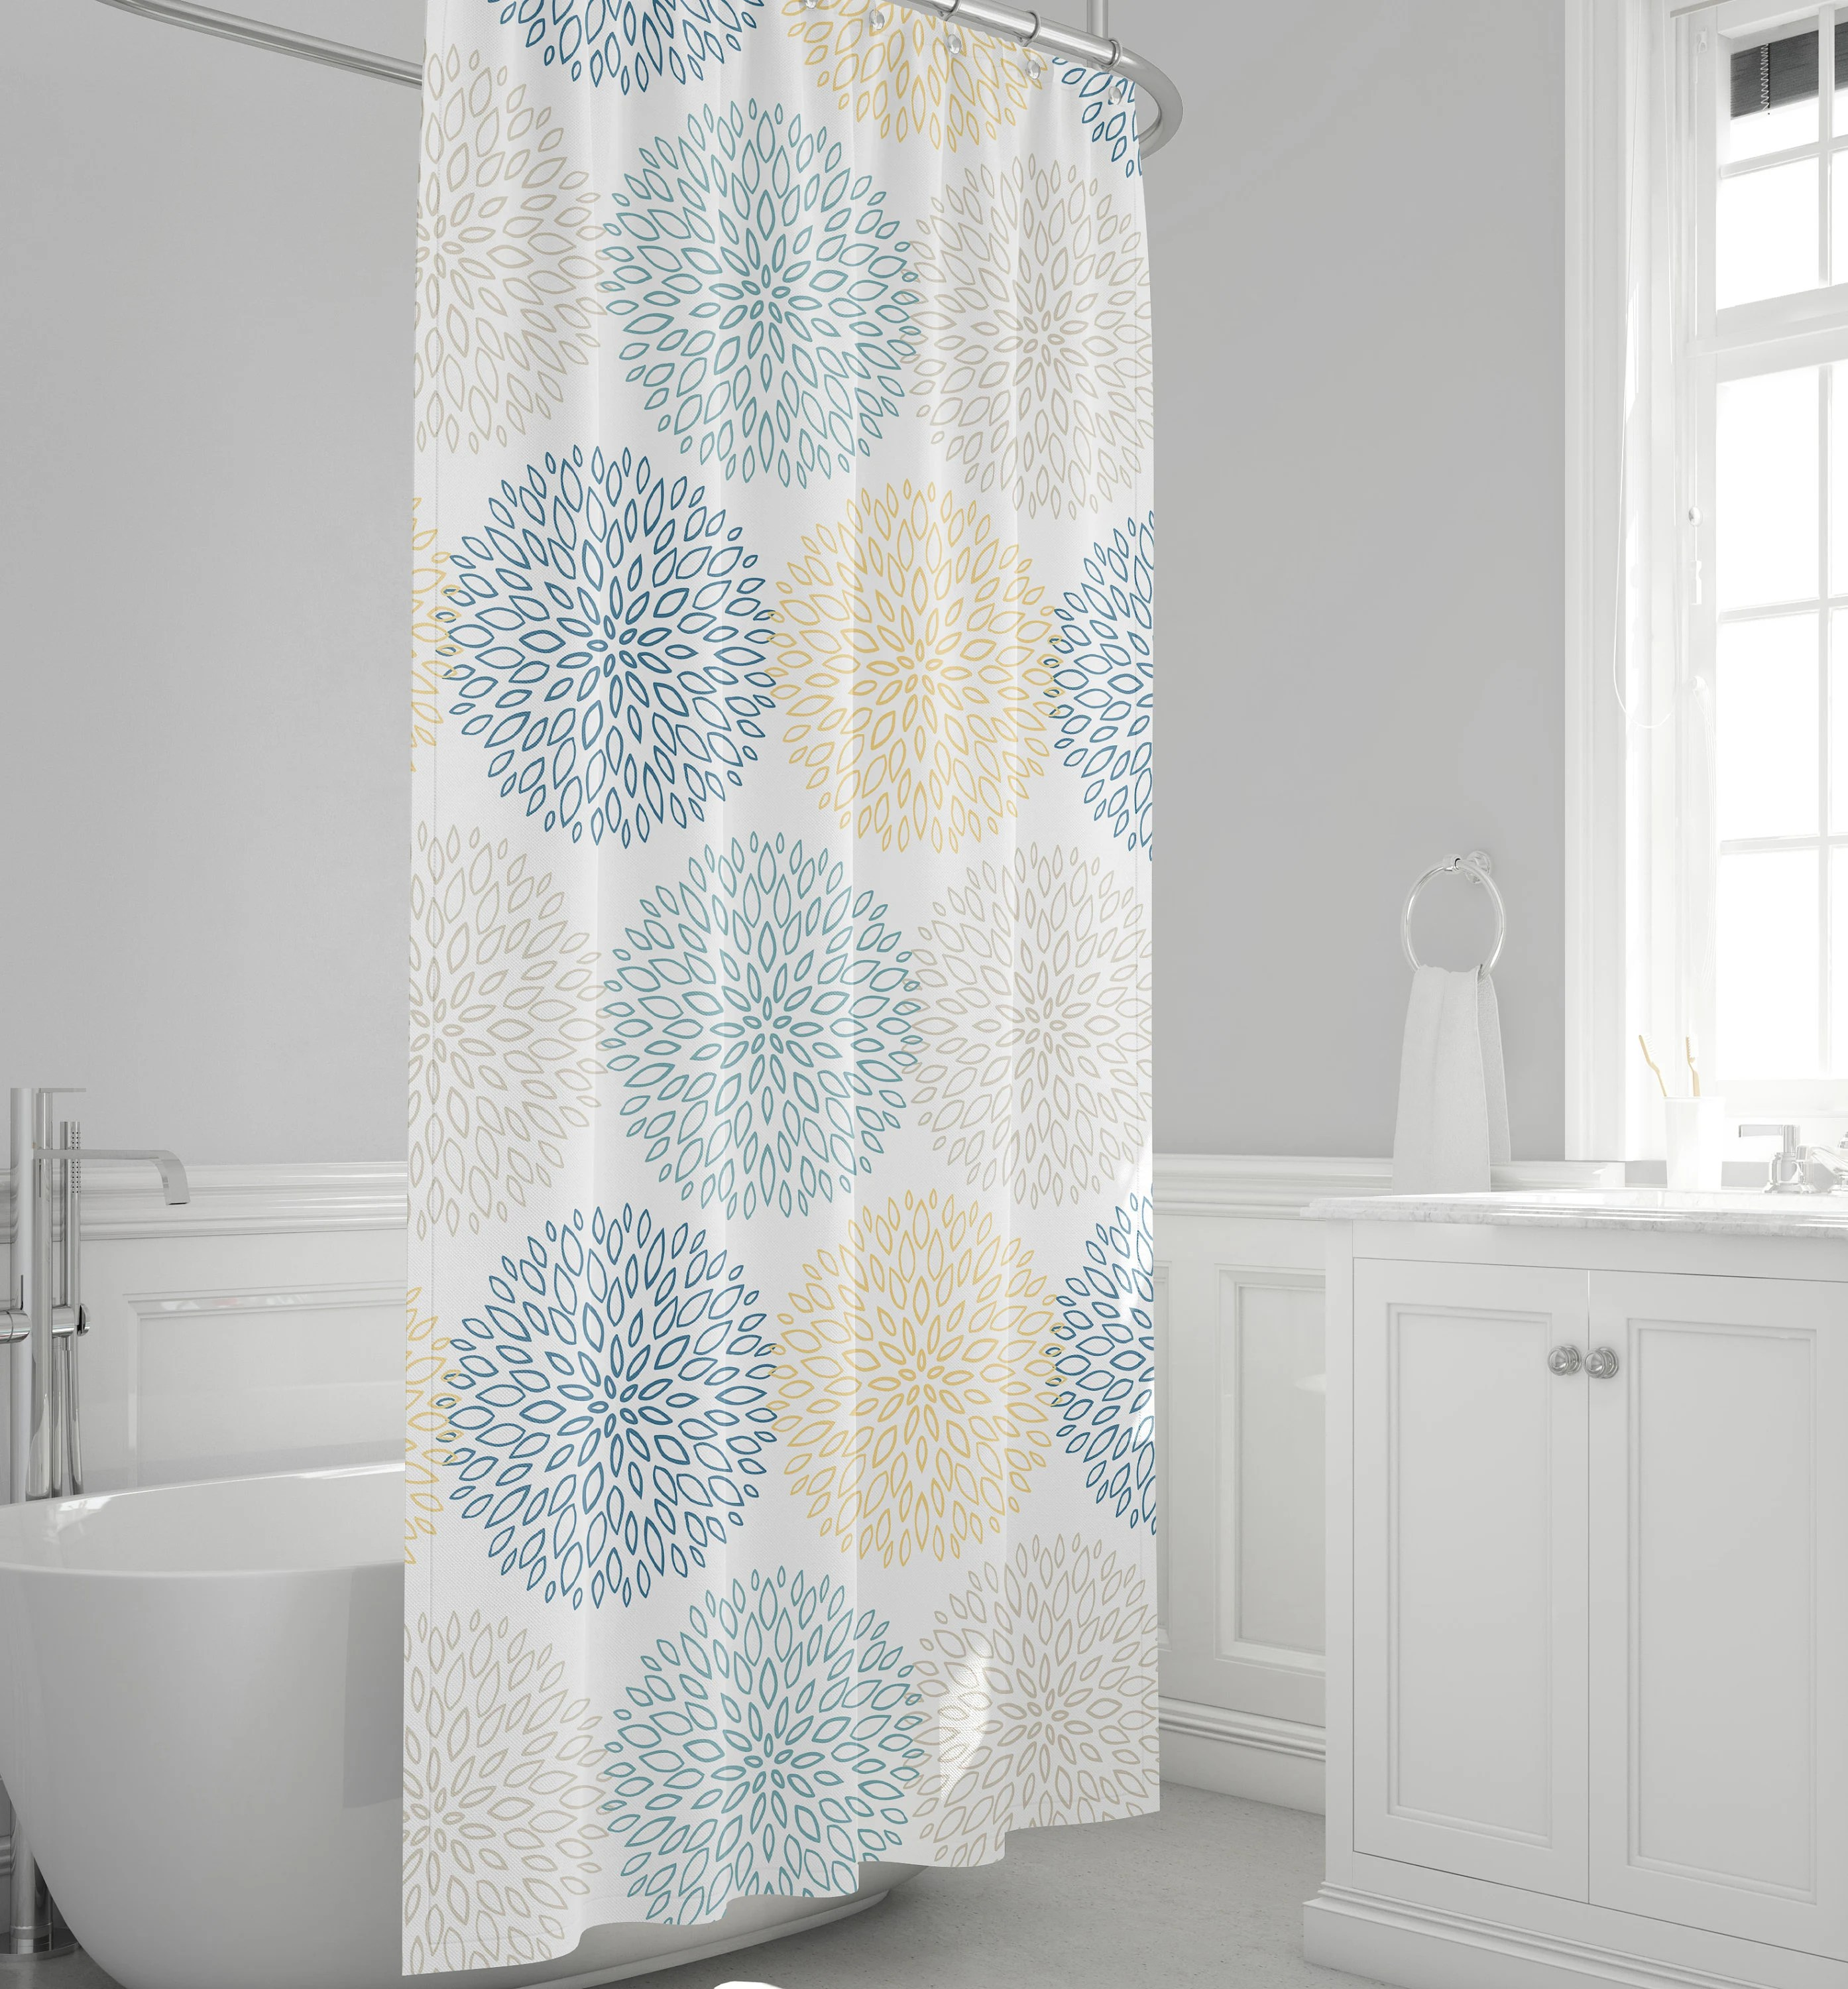 floral shower curtain blue and yellow bathroom decor large scale blooms bath curtain spa decor gray bath decor aqua blue bathroom decor